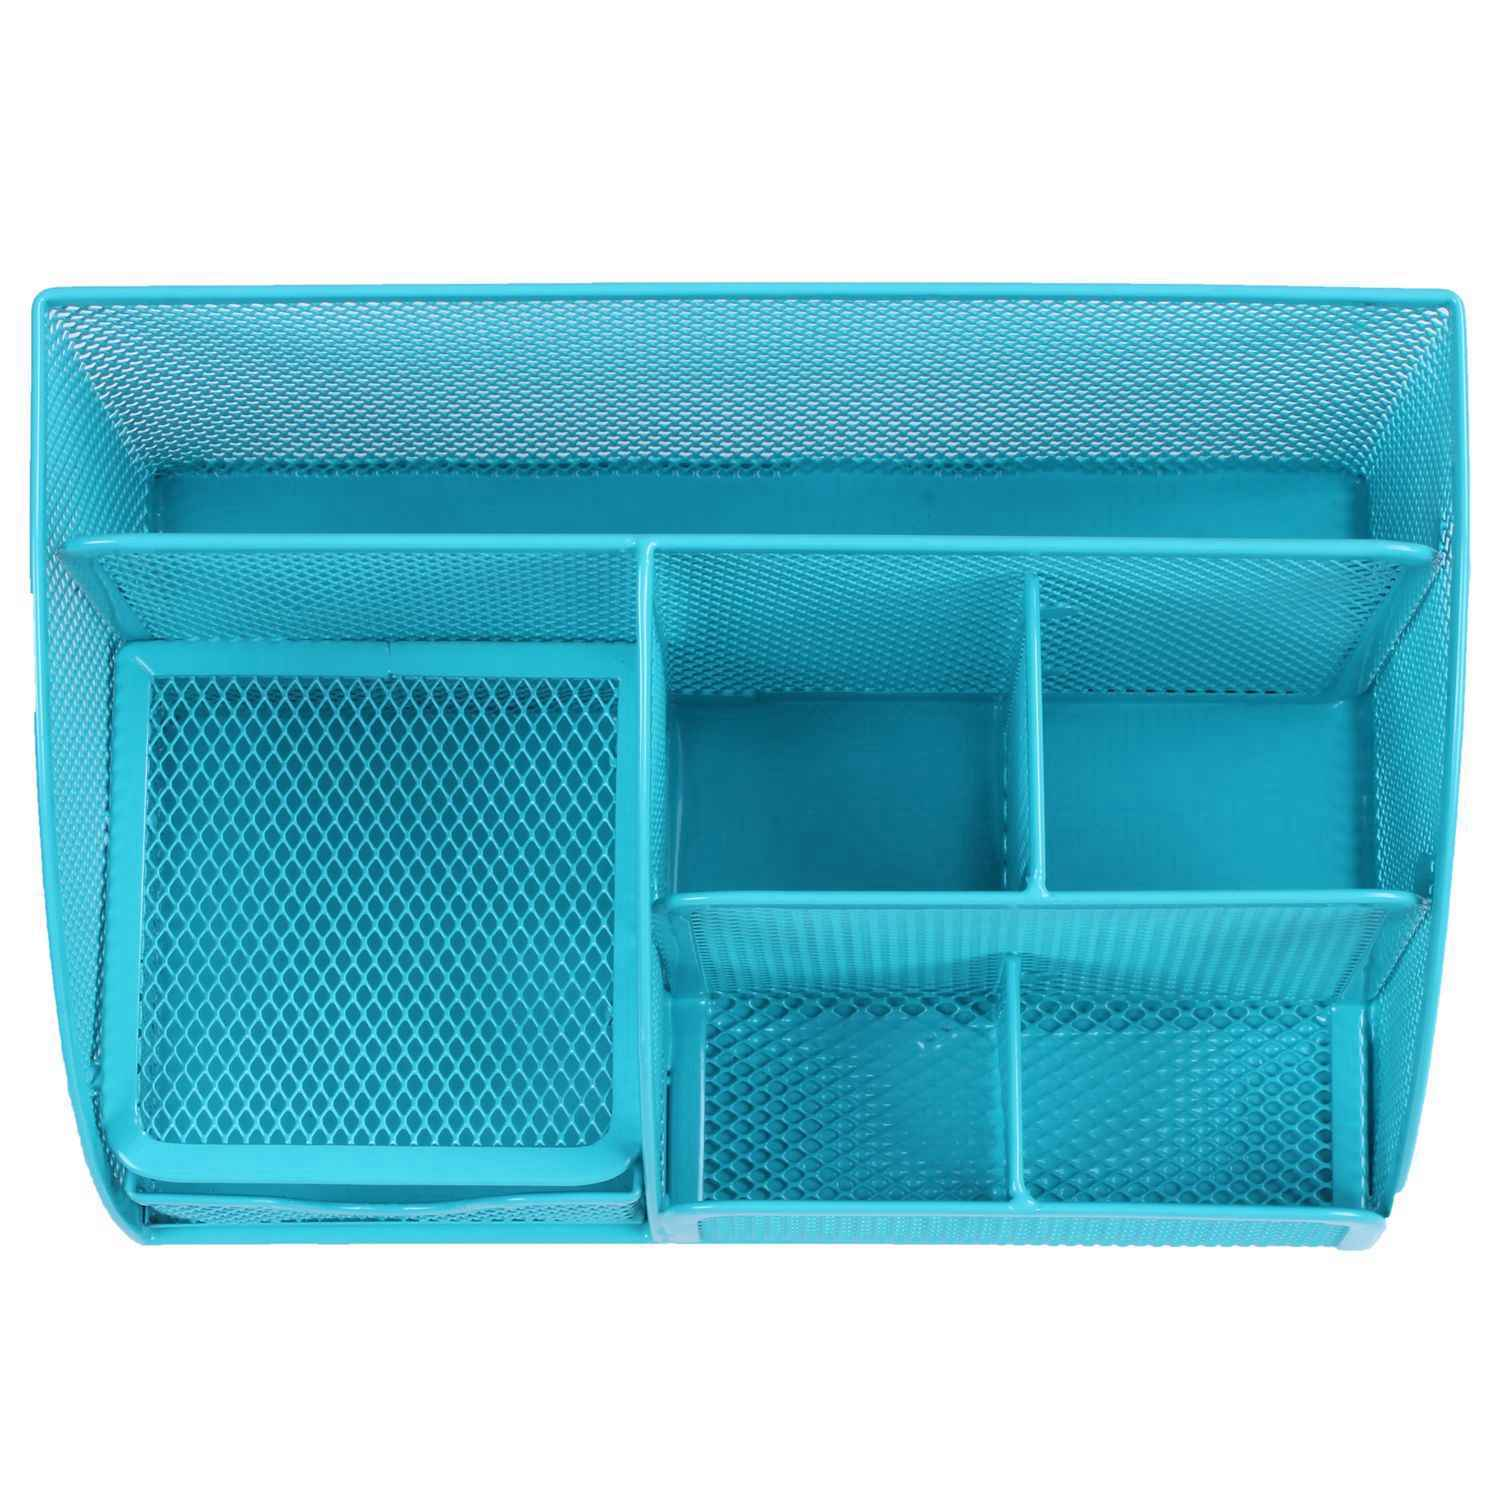 7 Cell Metal Desk Organizer Mesh Desktop Pencil Pen Sundries Badge Holder Storage Box Stationery Ruler School Office Supplies